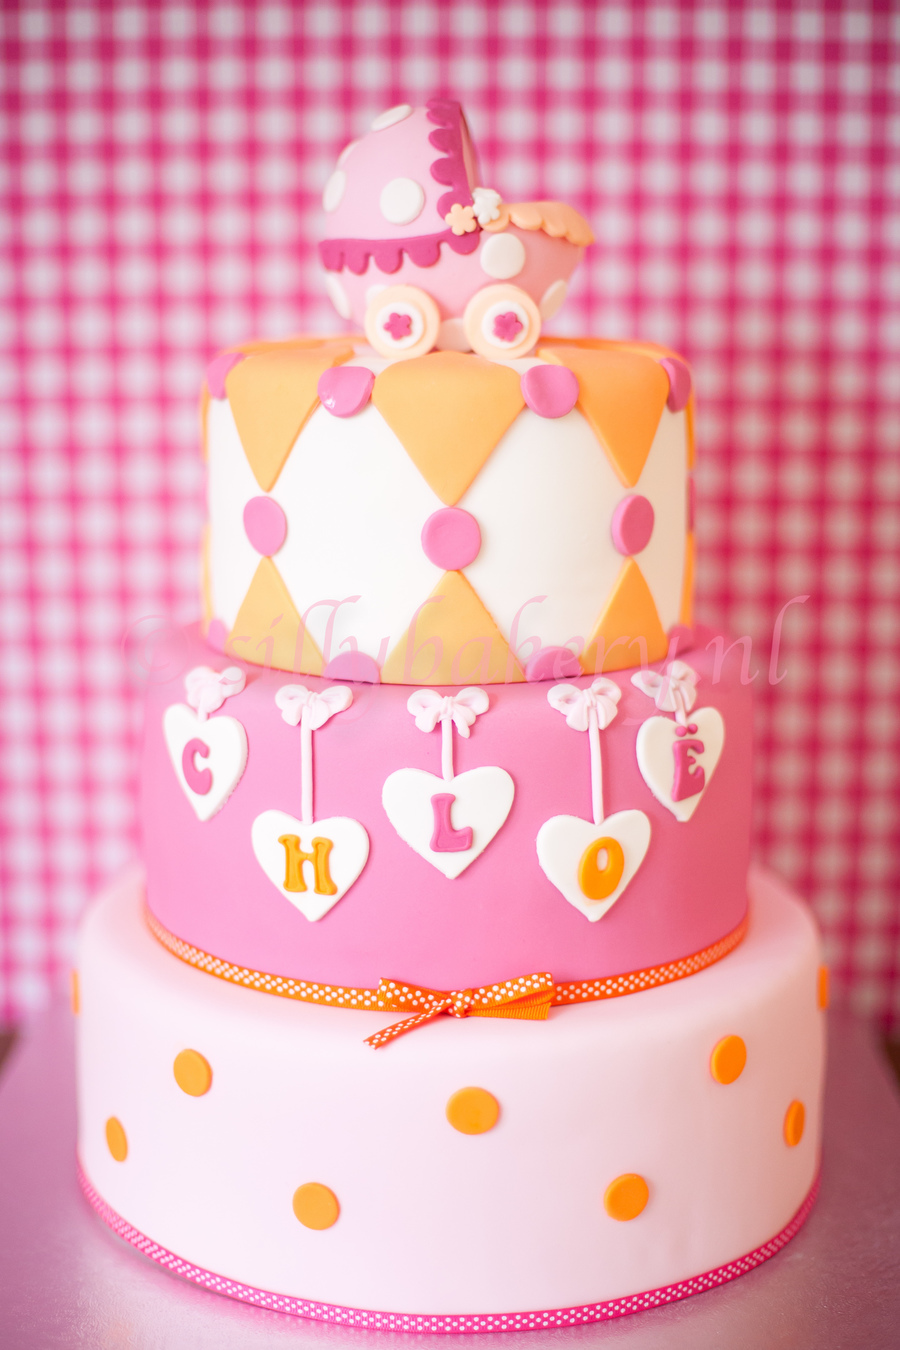 Baby Shower Cake Geboorte Taart Kraamfeest Taart Silly Bakery  on Cake Central